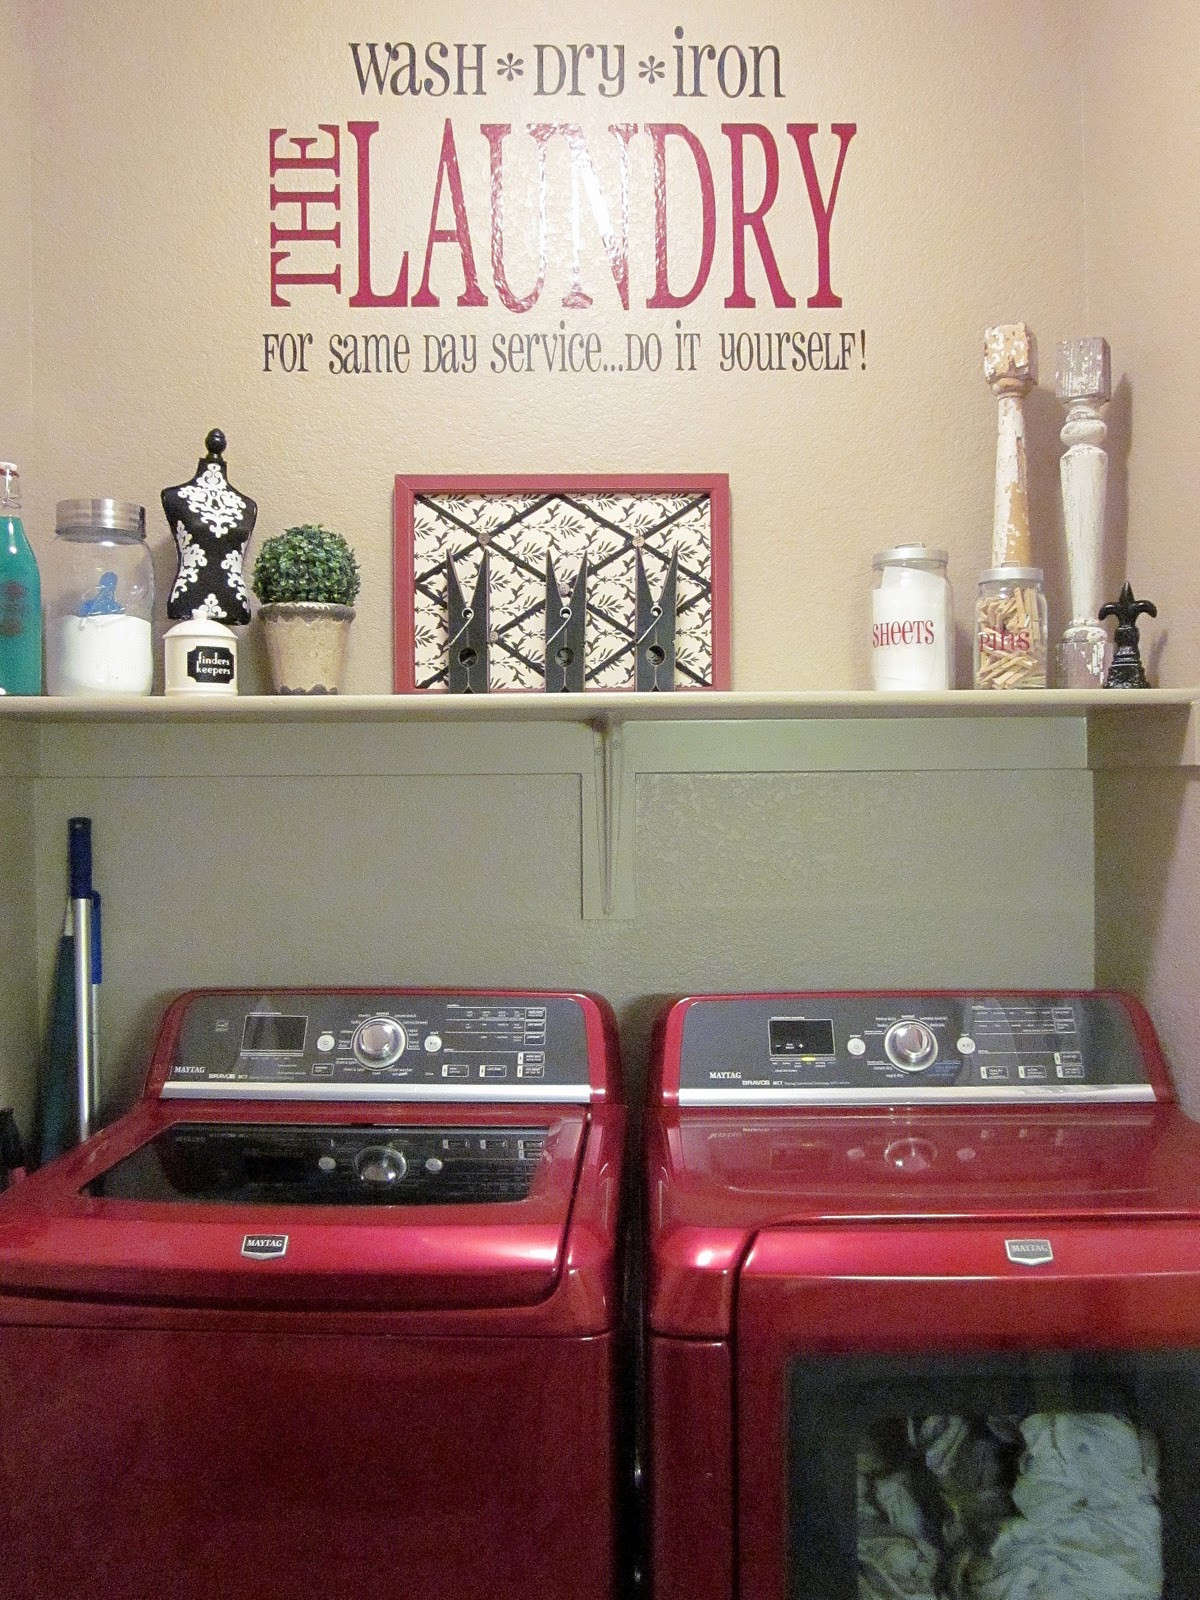 Best ideas about Laundry Room Decor . Save or Pin Adorable Antics Laundry Room Decorations on NO bud Now.